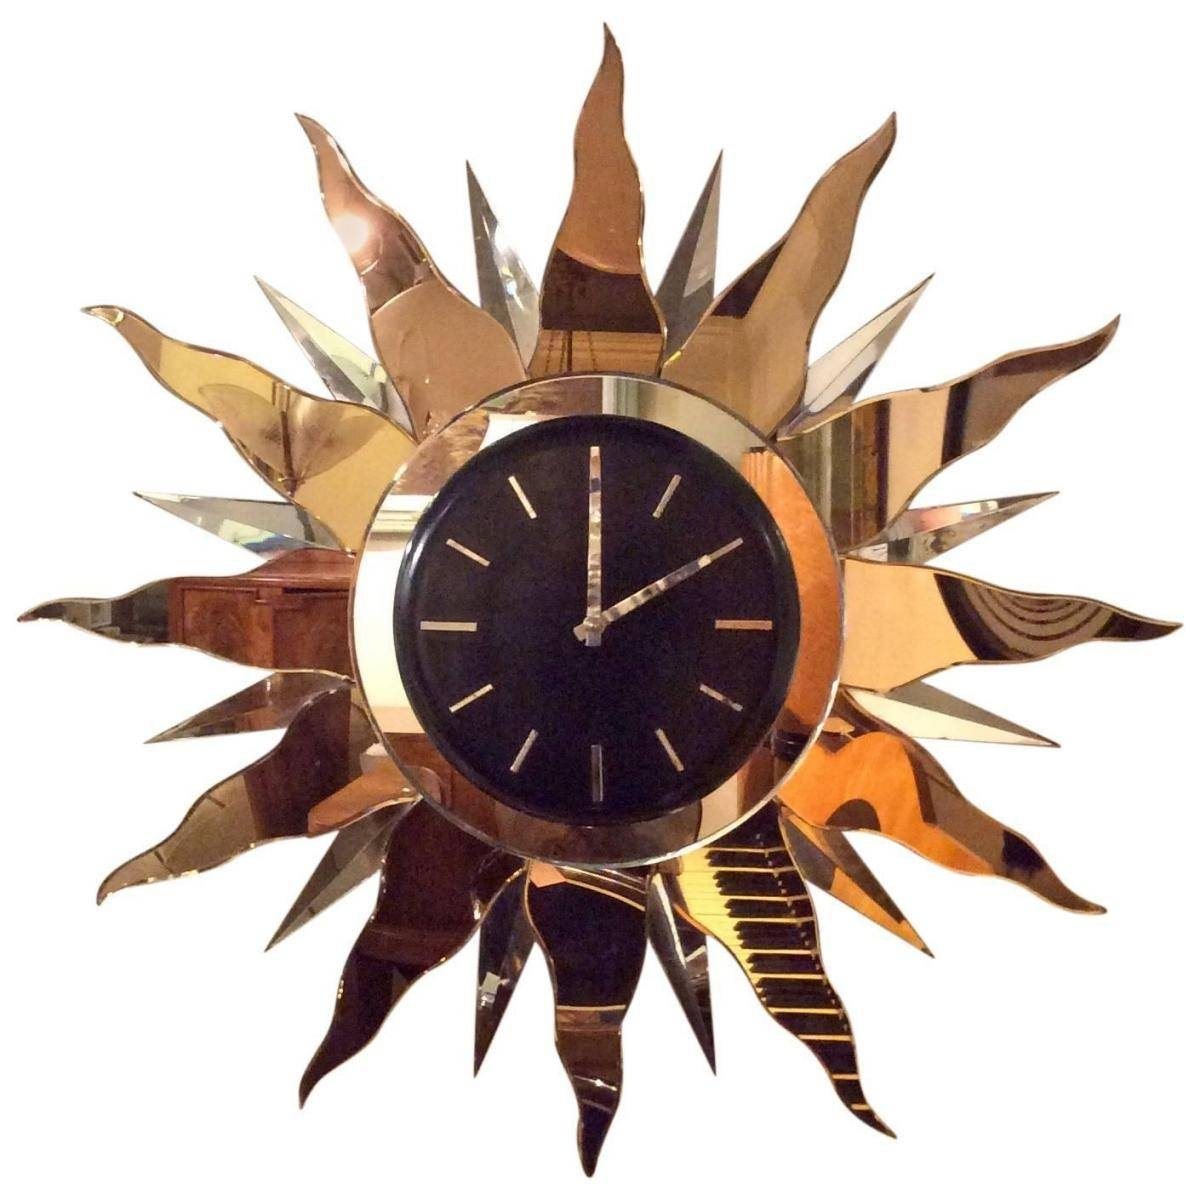 Large Art Deco Wall Clock, 1930s For Sale At Pamono Inside Most Recent Large Art Deco Wall Clocks (View 2 of 30)